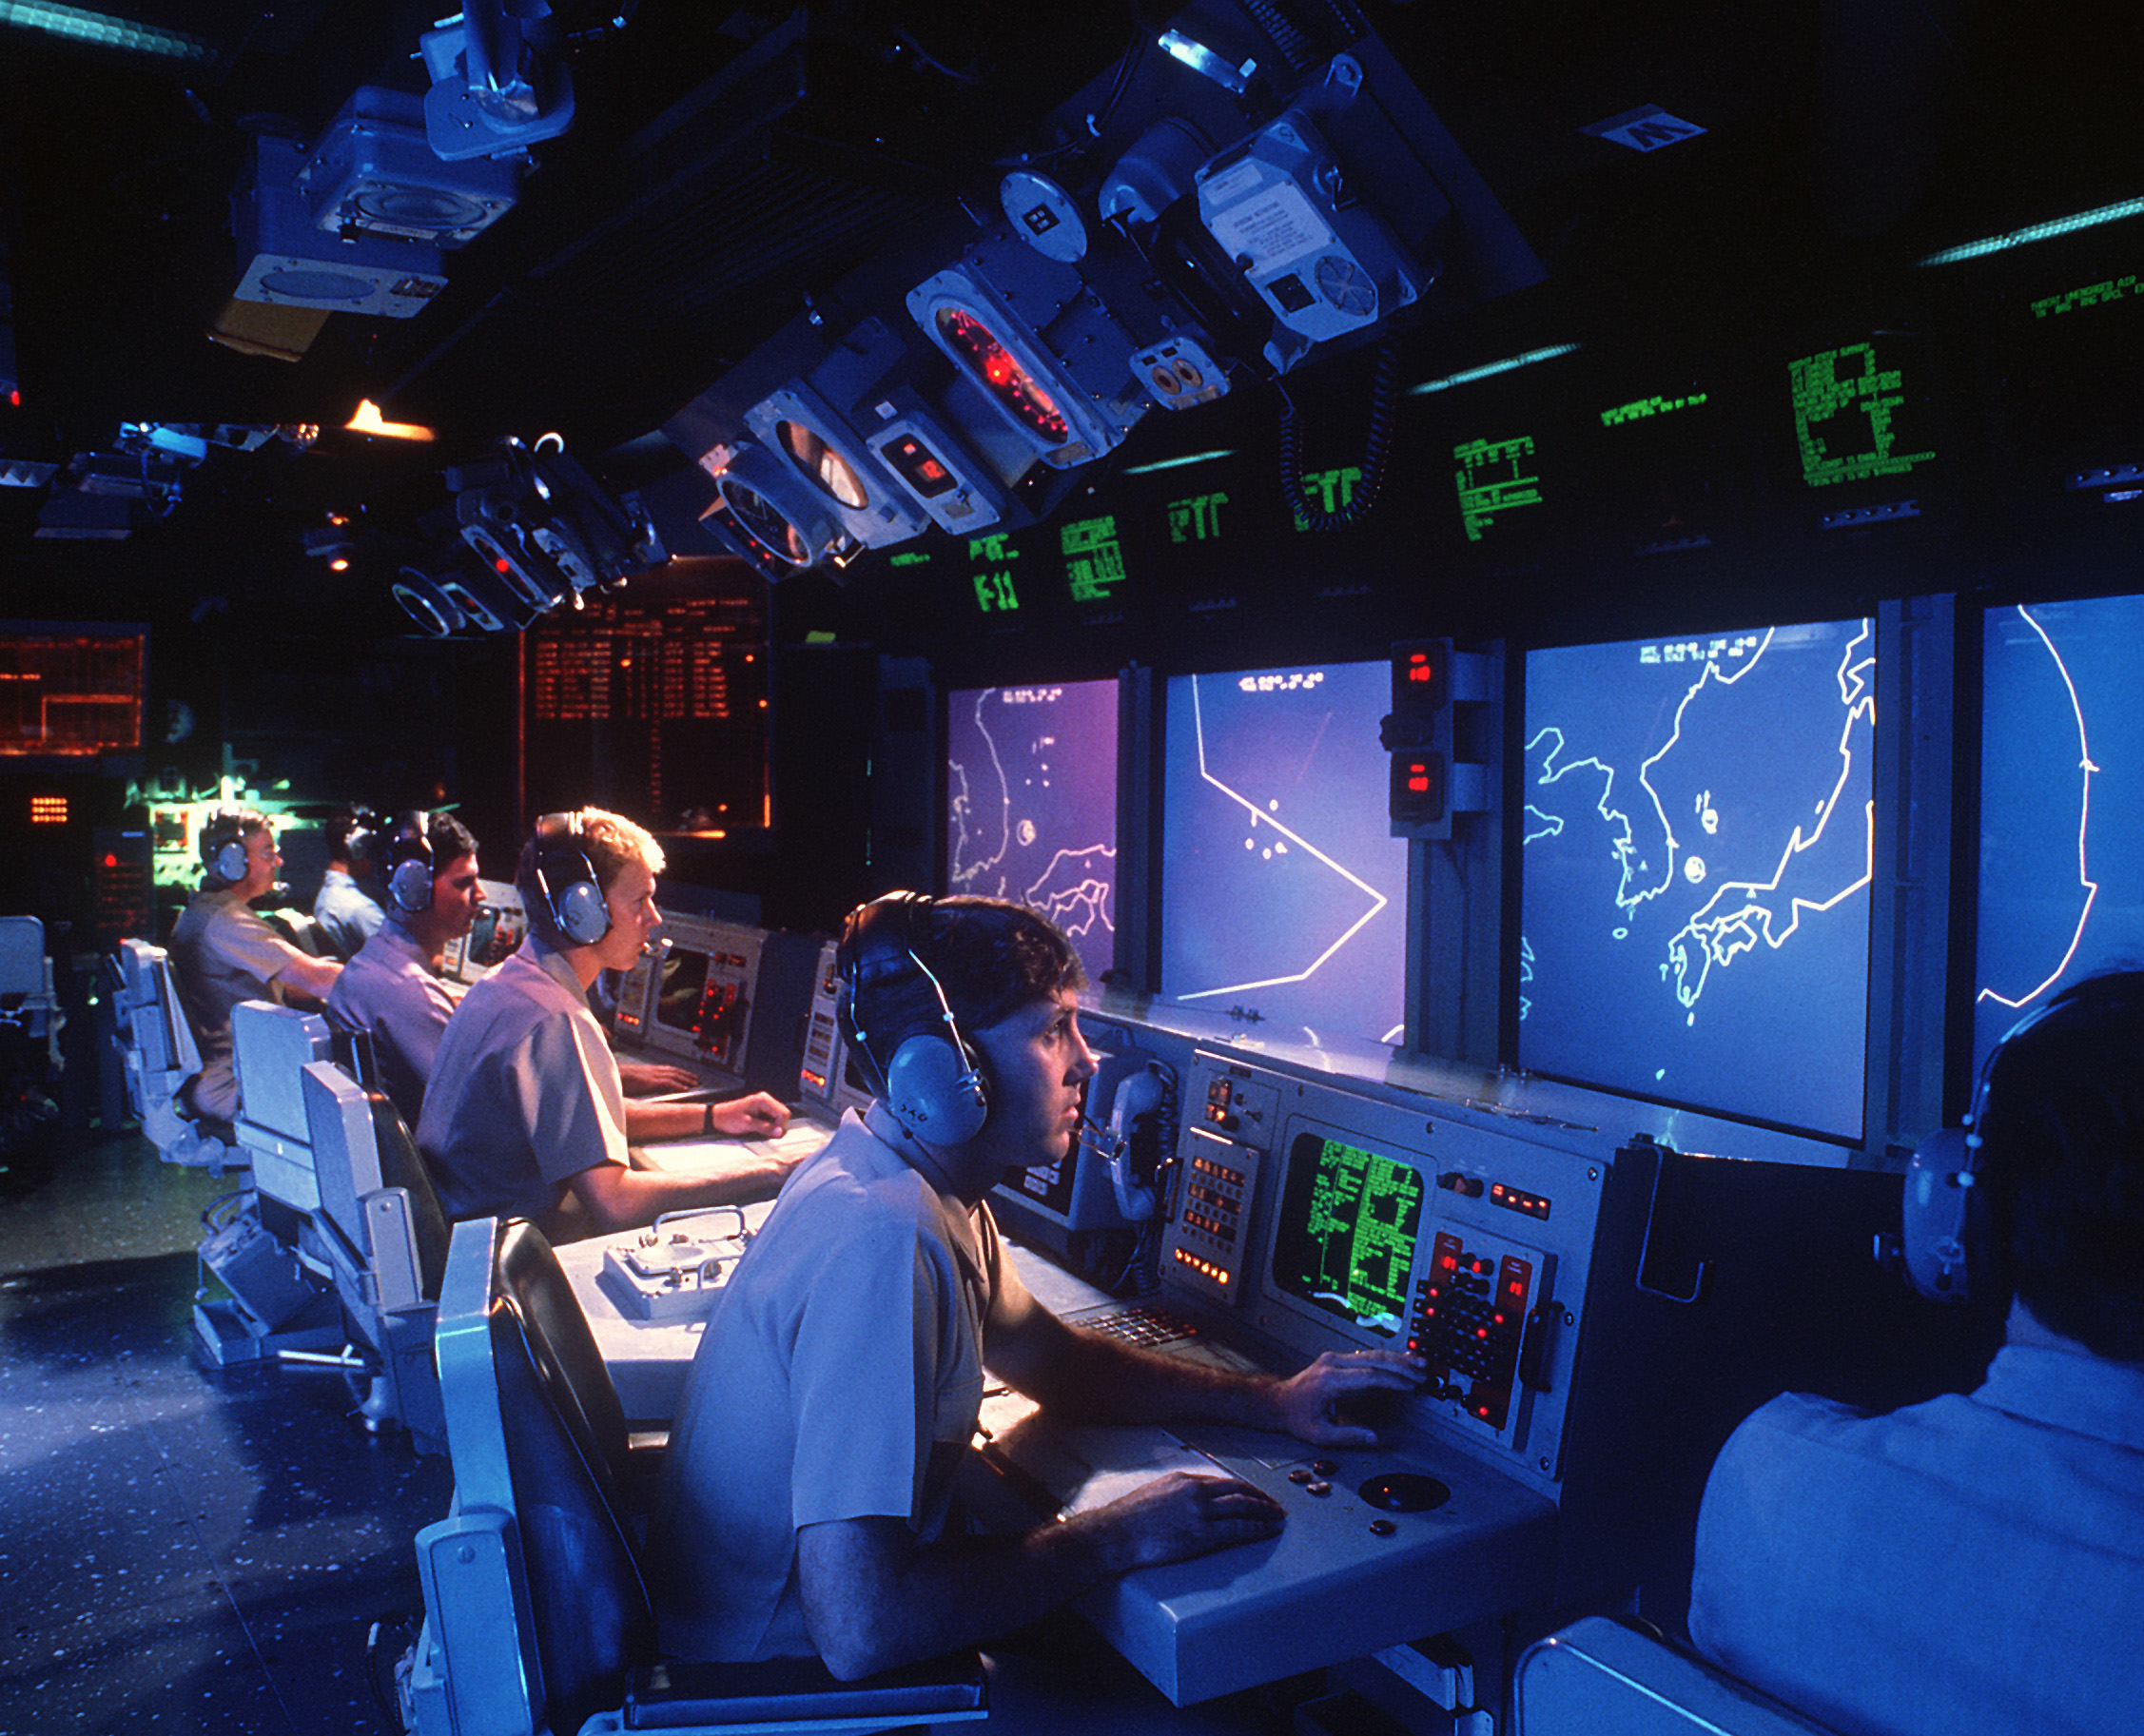 أسلحة صنعت الحدث - صفحة 12 USS_Vincennes_(CG-49)_Aegis_large_screen_displays